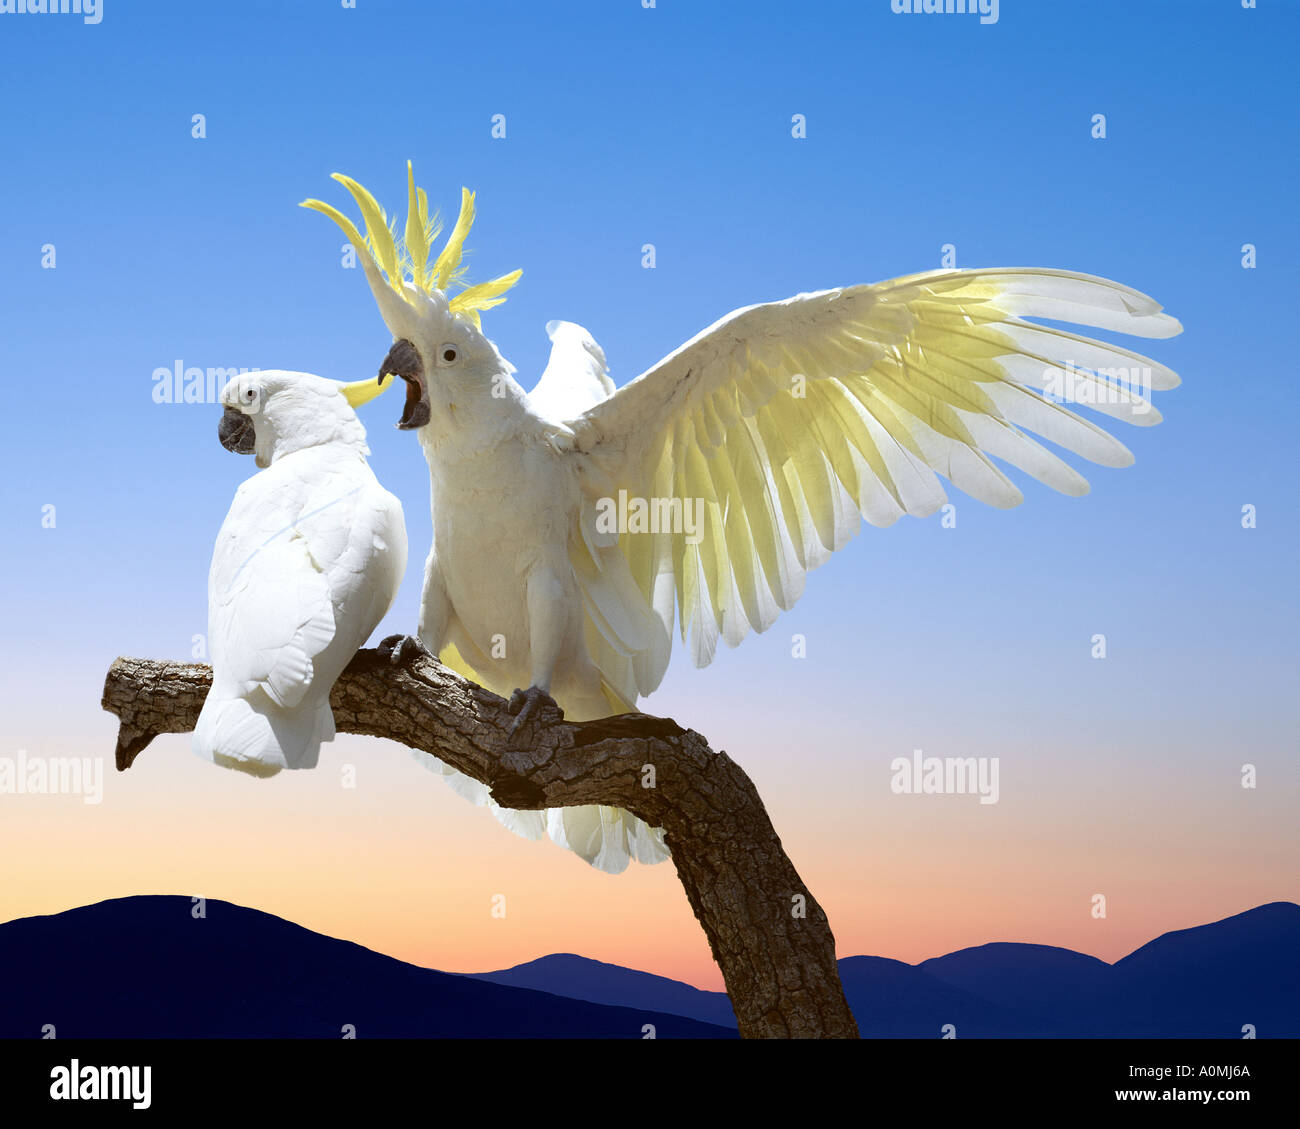 AU - NEW SOUTH WALES: Sulphur Crested Cockatoos - Stock Image